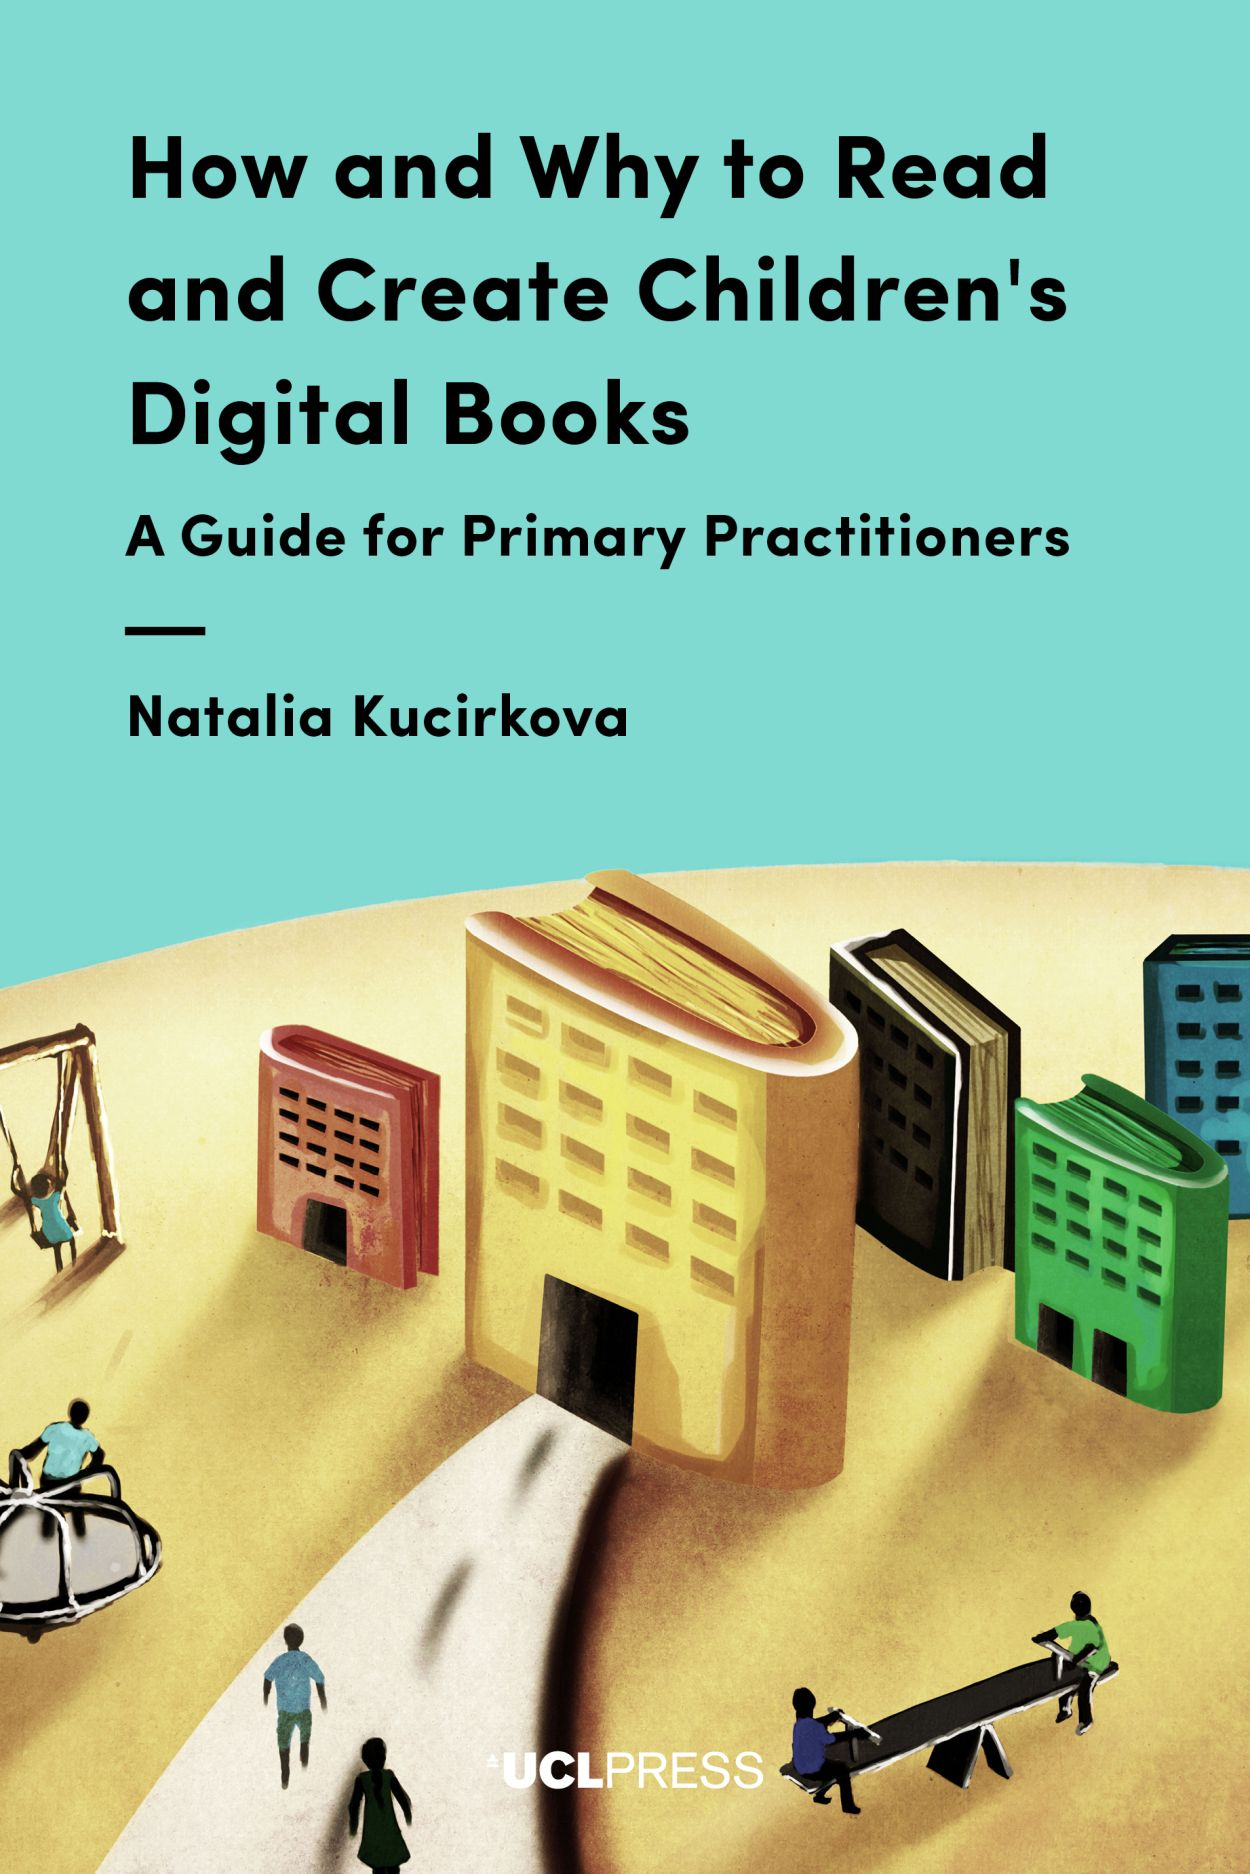 How and Why to Read and Create Children's Digital Books: A Guide for Primary Practitioners